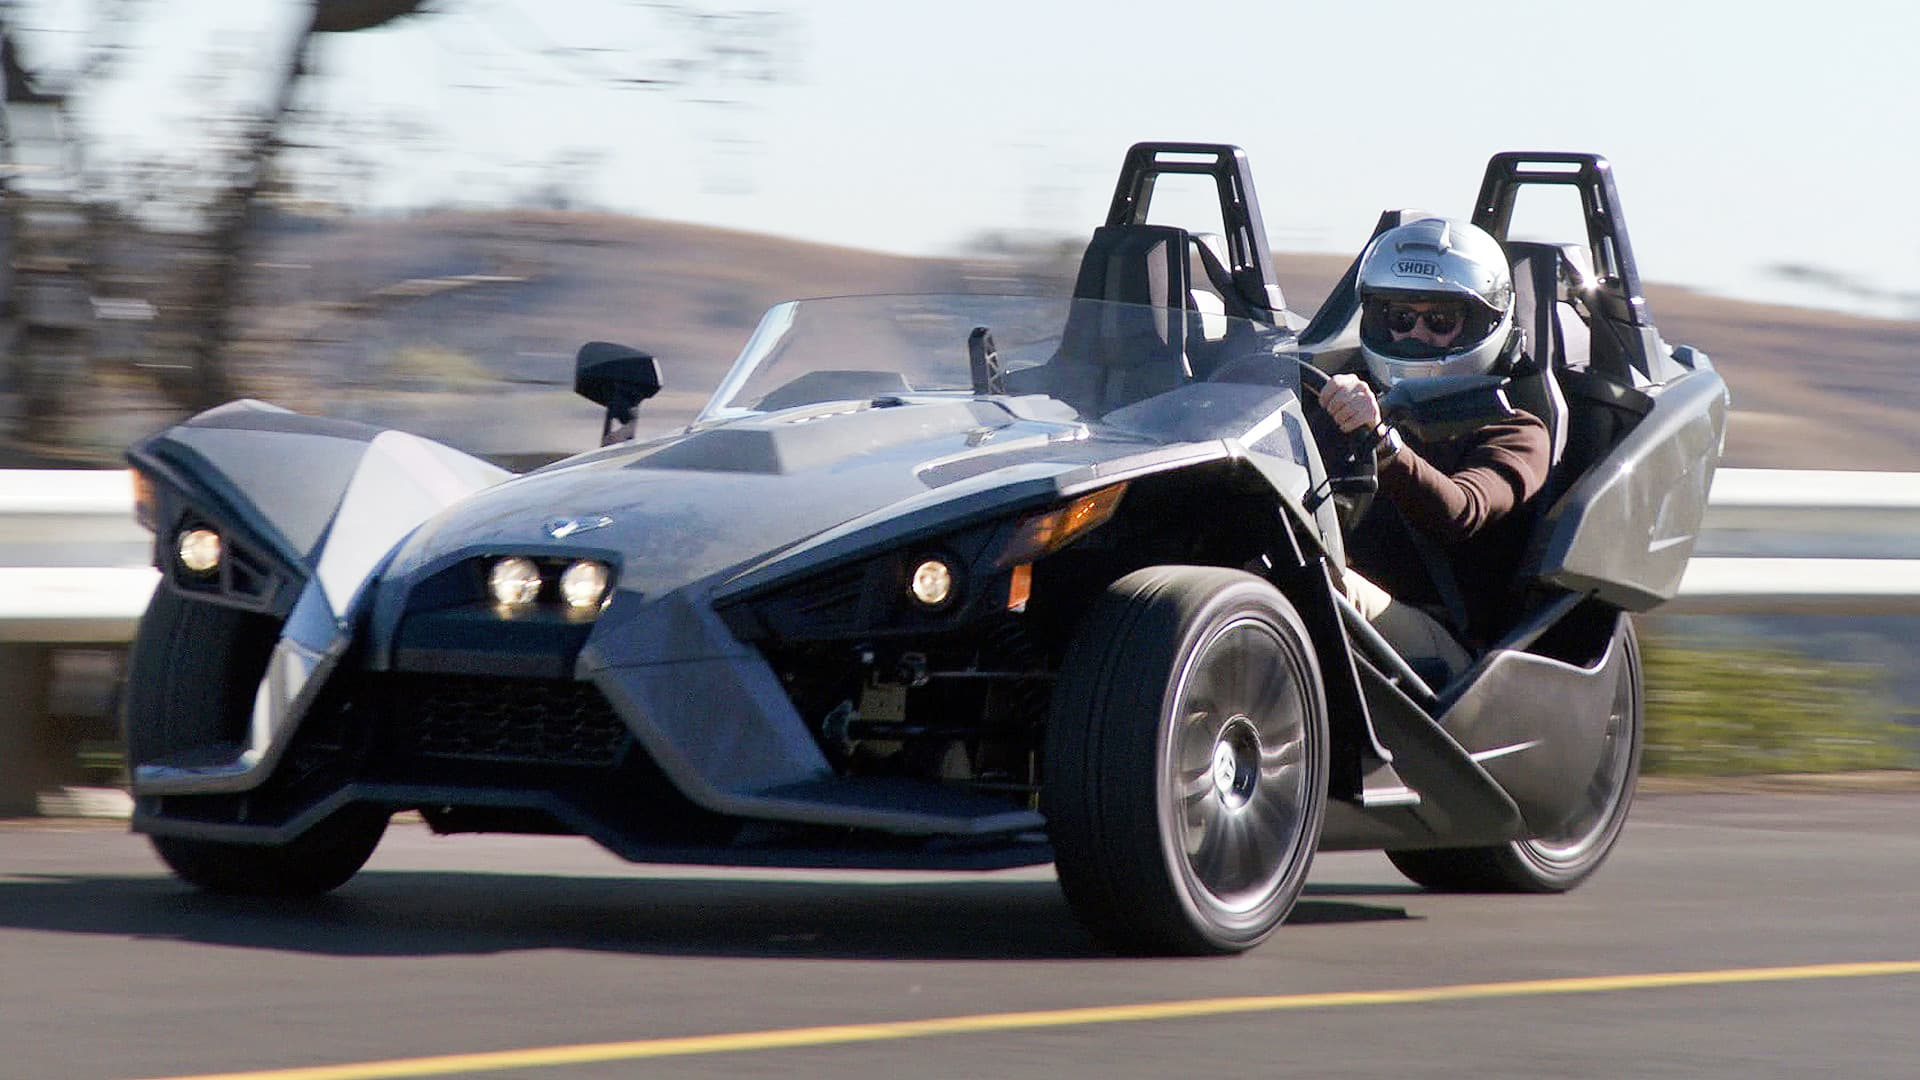 3 Wheeled Motorcycles Are The New Trend But Are They A Good Investment